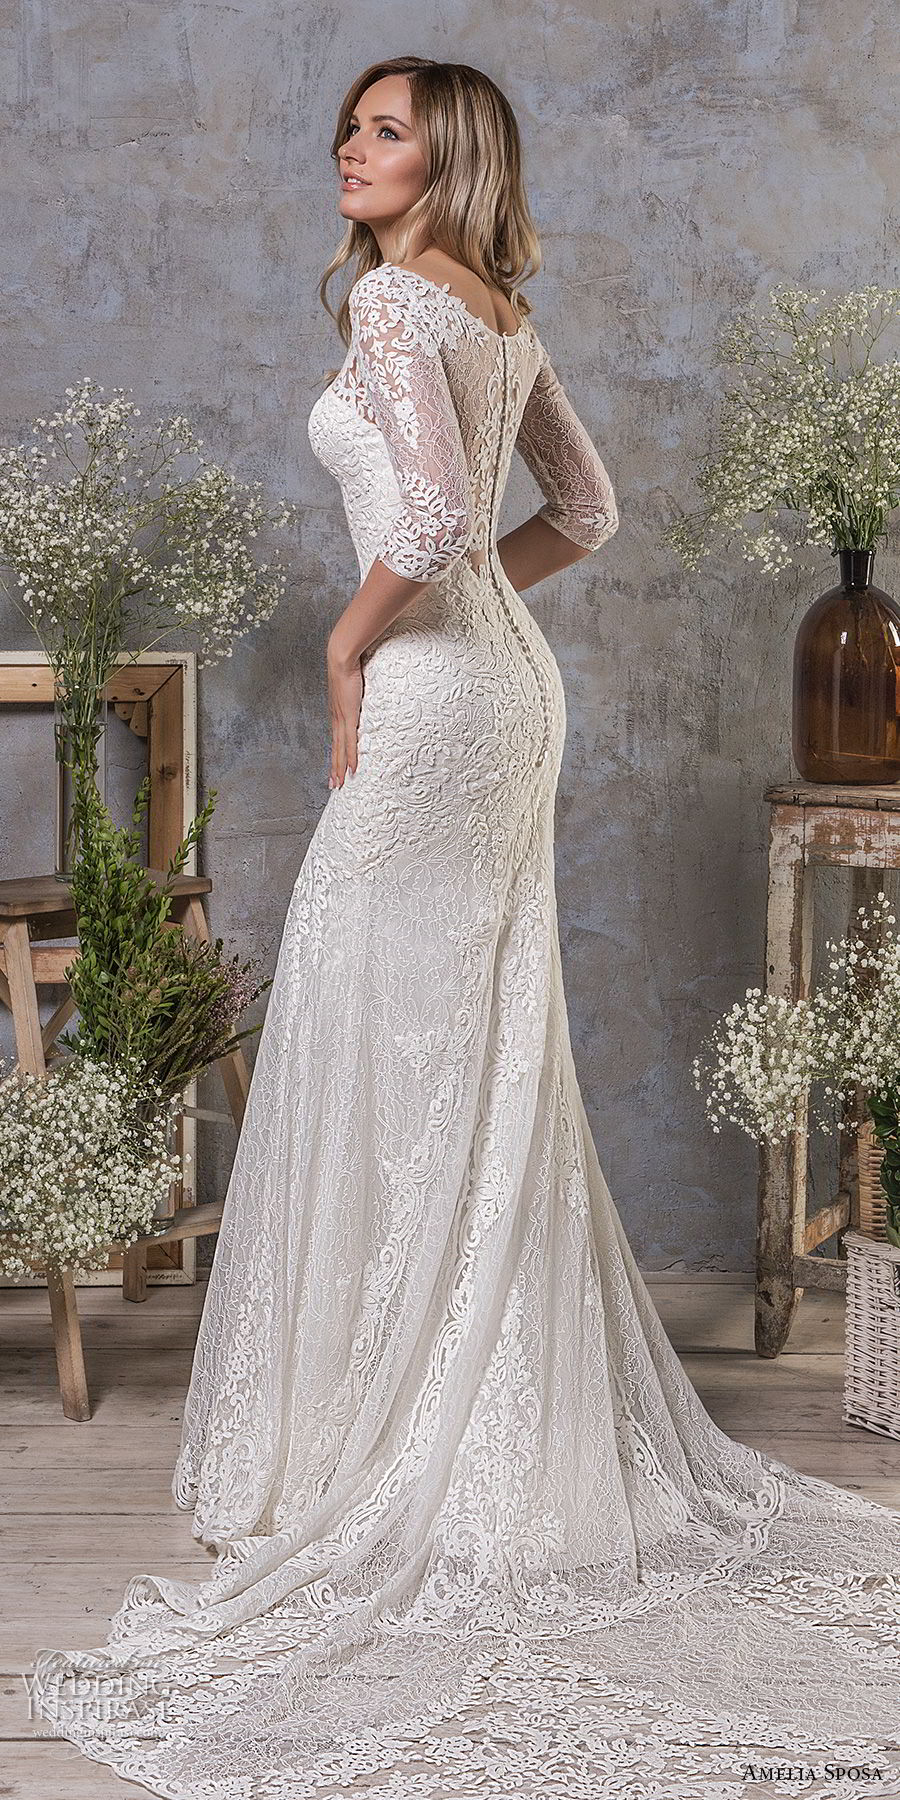 amelia sposa fall 2018 bridal half sleeves sweetheart neckline heavily embellished bodice elegant drop waist a line wedding dress covered lace back medium train (4) sdv